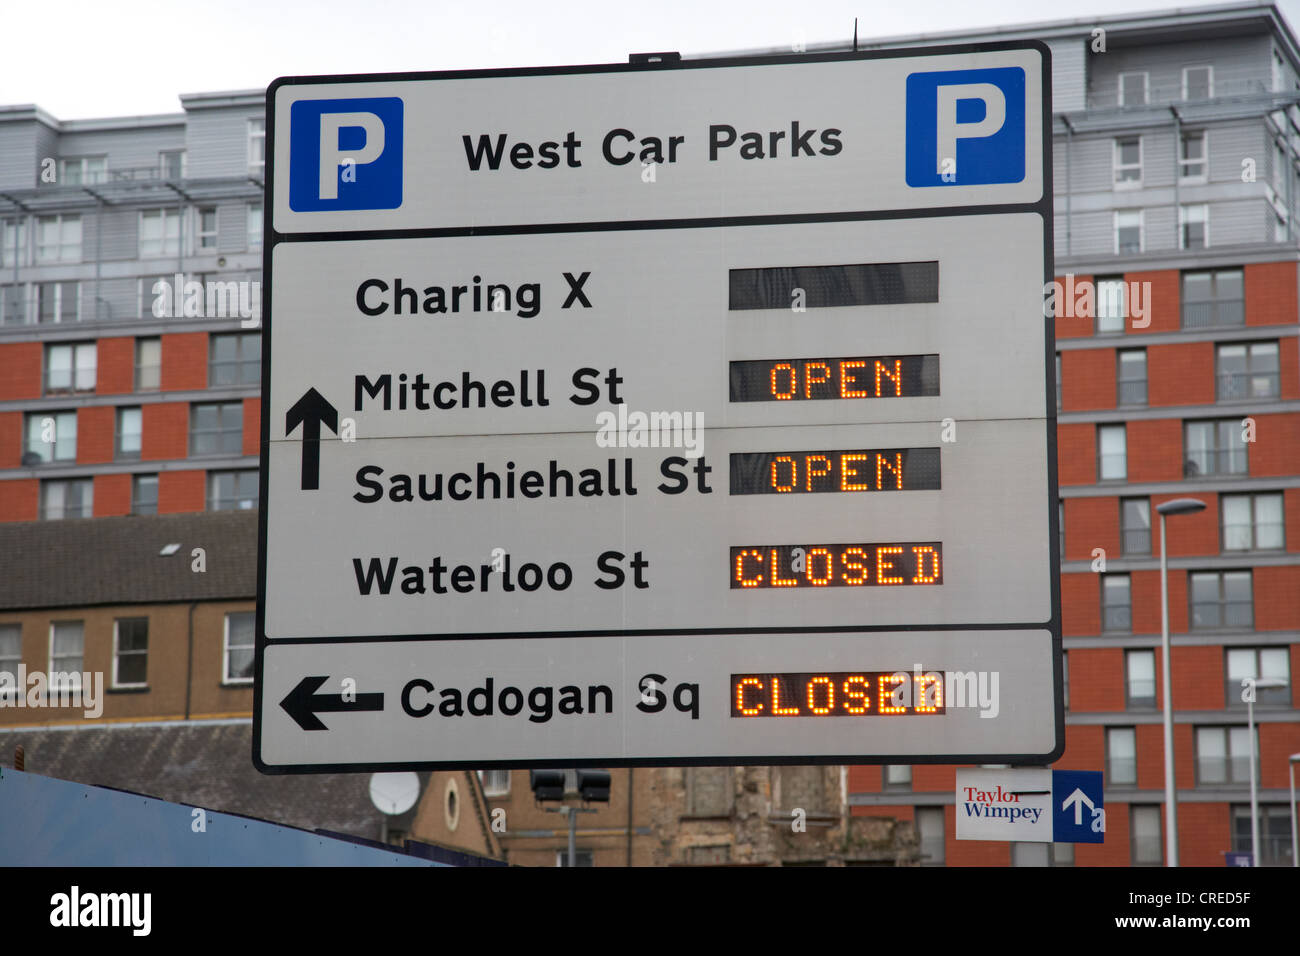 electronic signs for car parking in west glasgow scotland uk - Stock Image